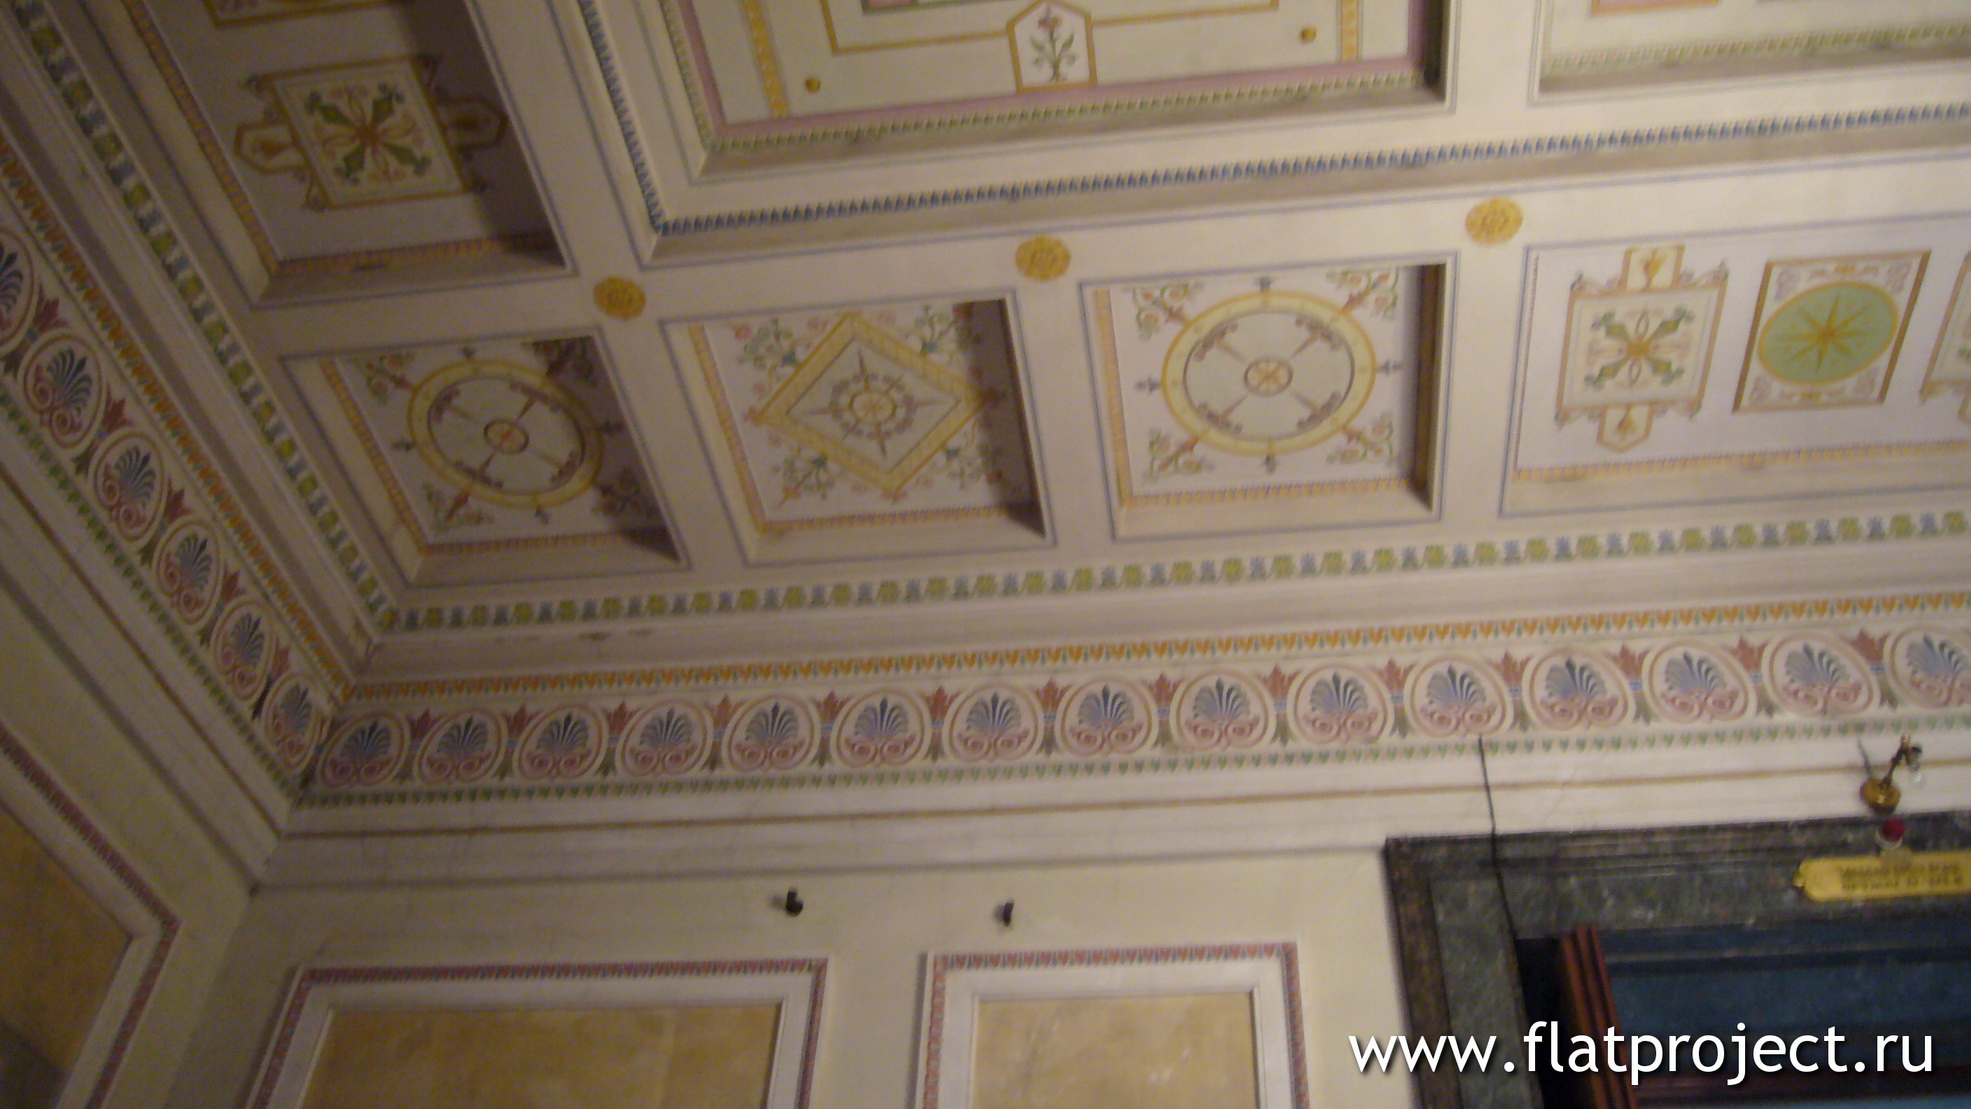 The State Hermitage museum interiors – photo 254